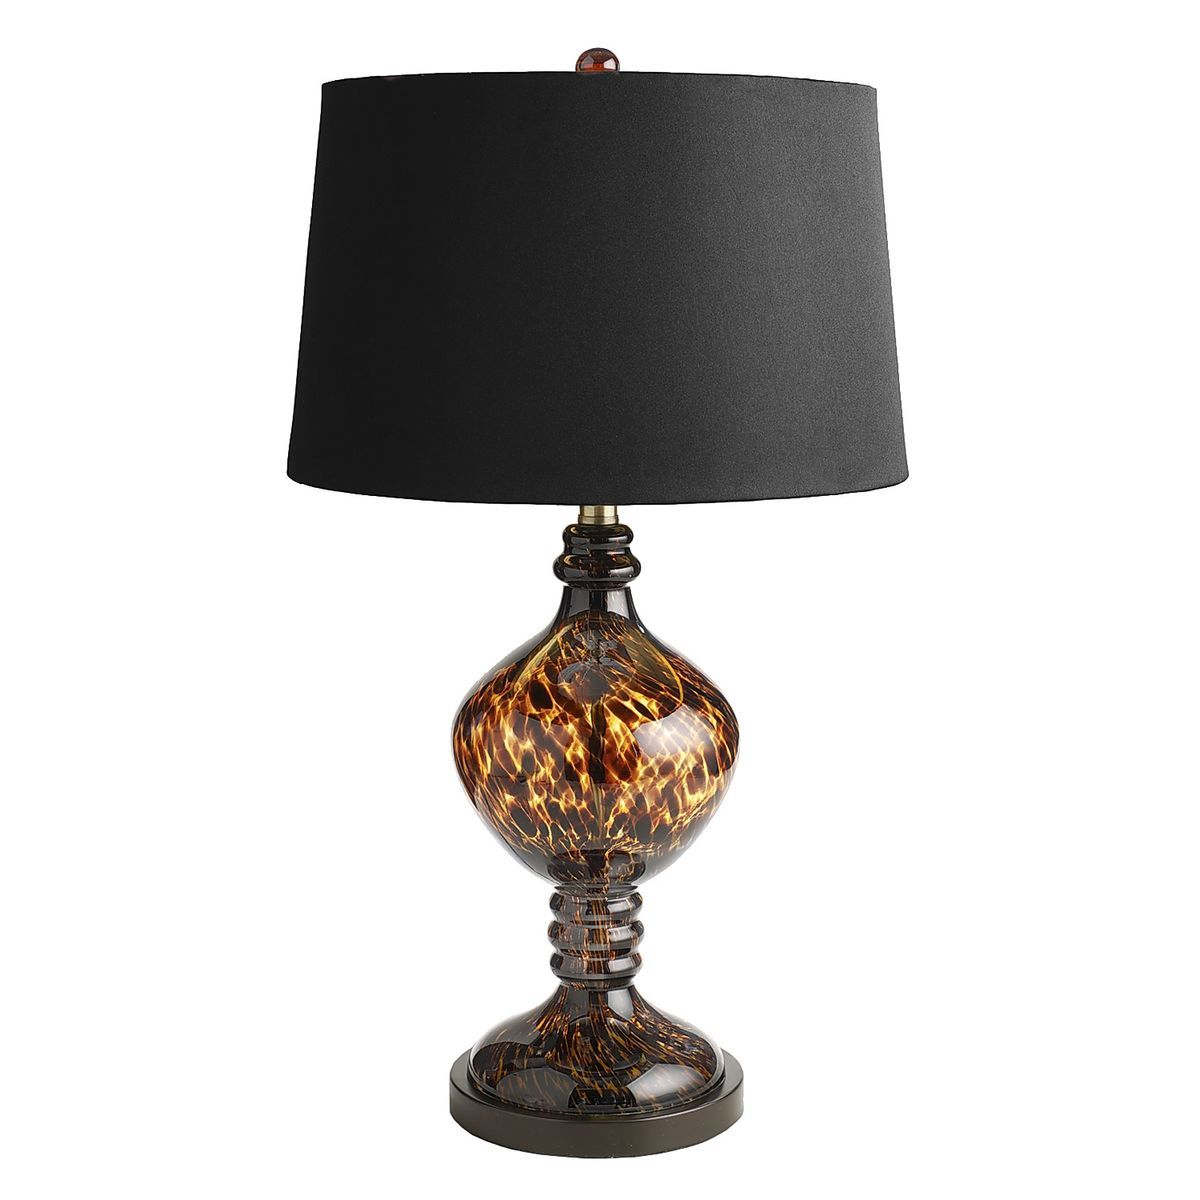 Tortoise Glass Lamp Pier 1 Imports House Decorating Table Lamp